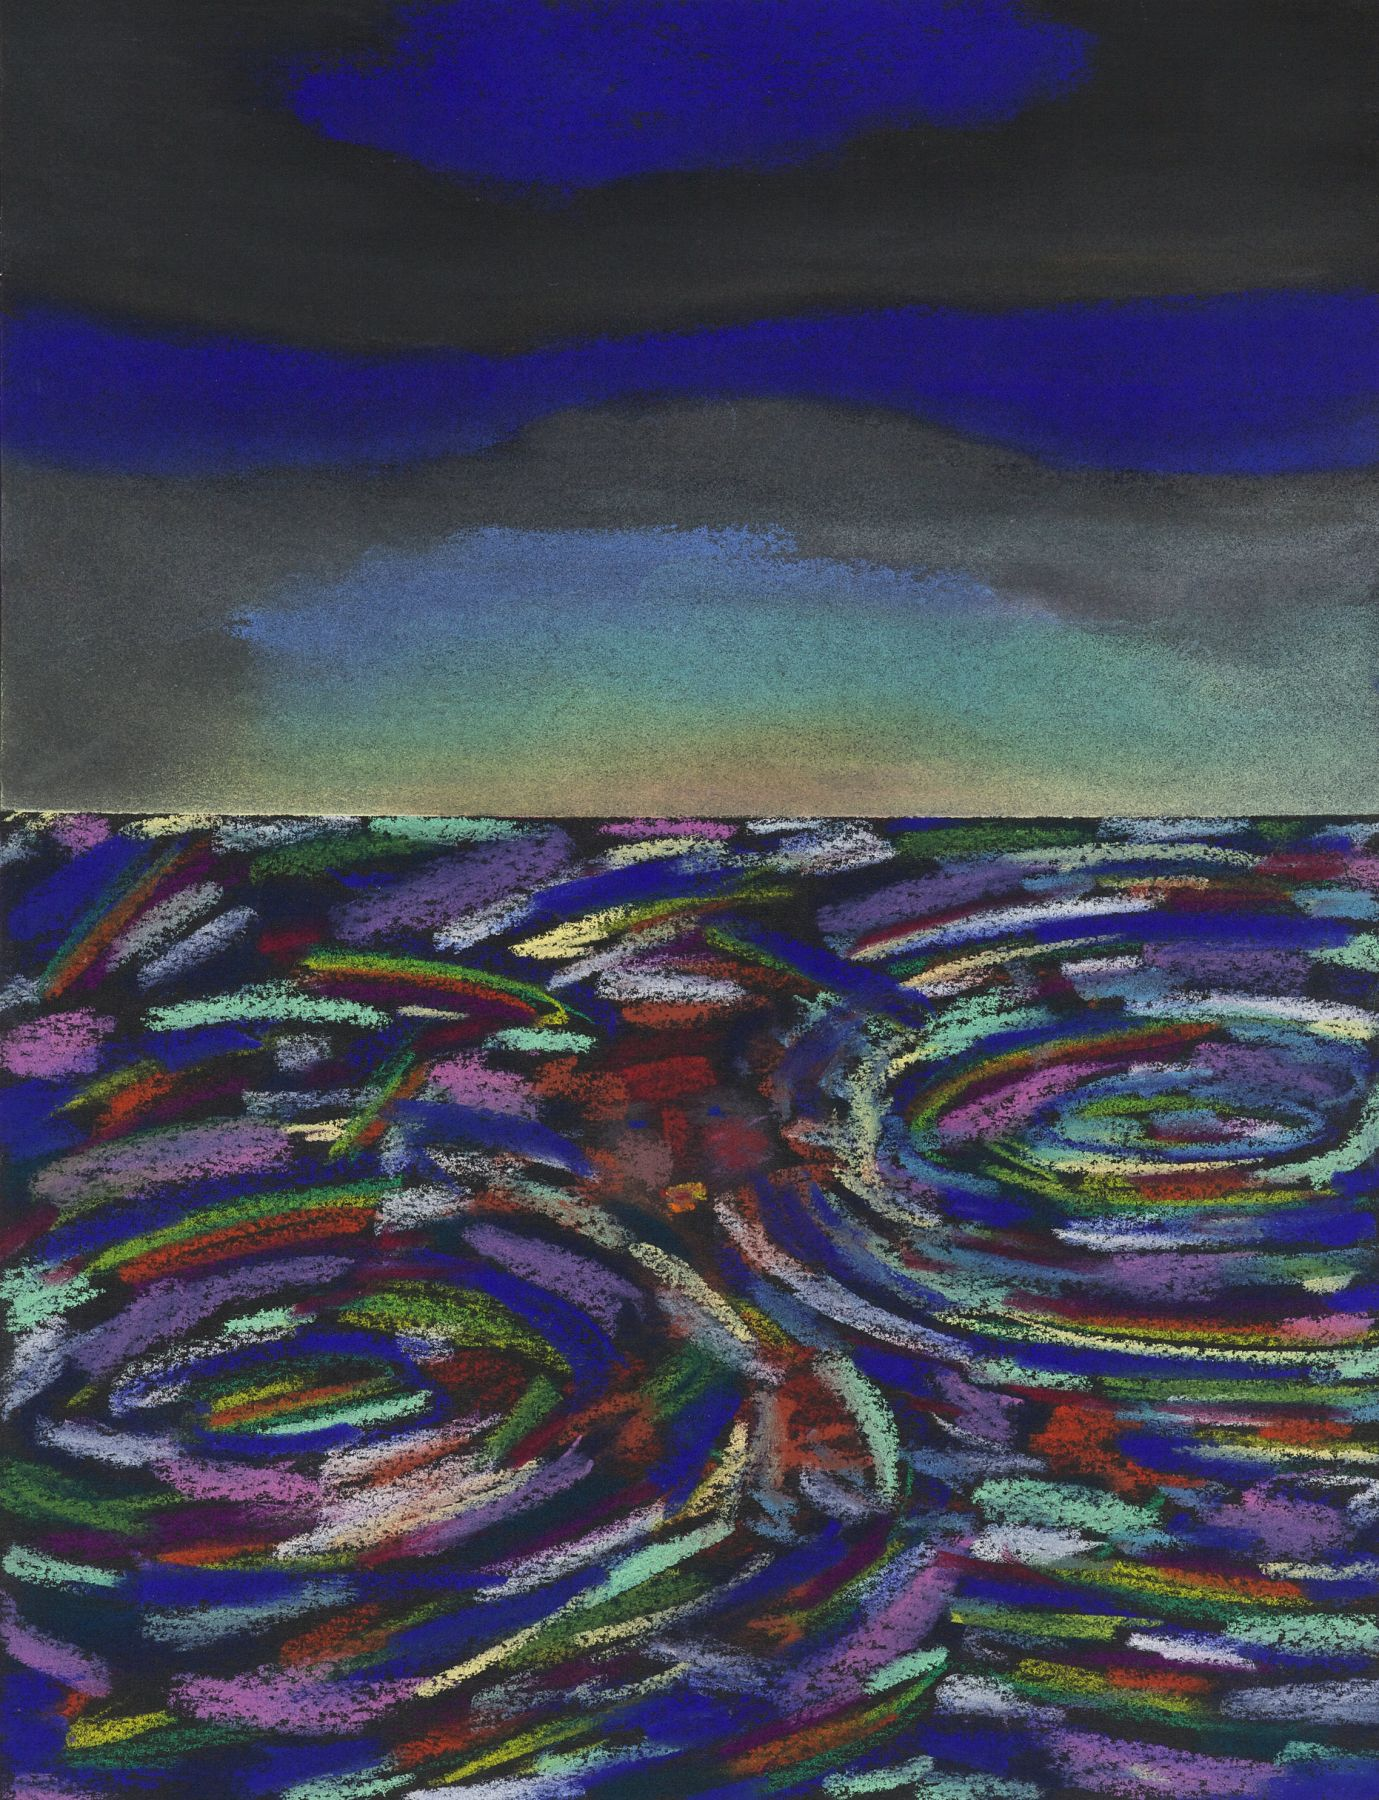 Lucas Samaras, Untitled, October 17, 1974. Pastel on paper, 13 x 10 inches.